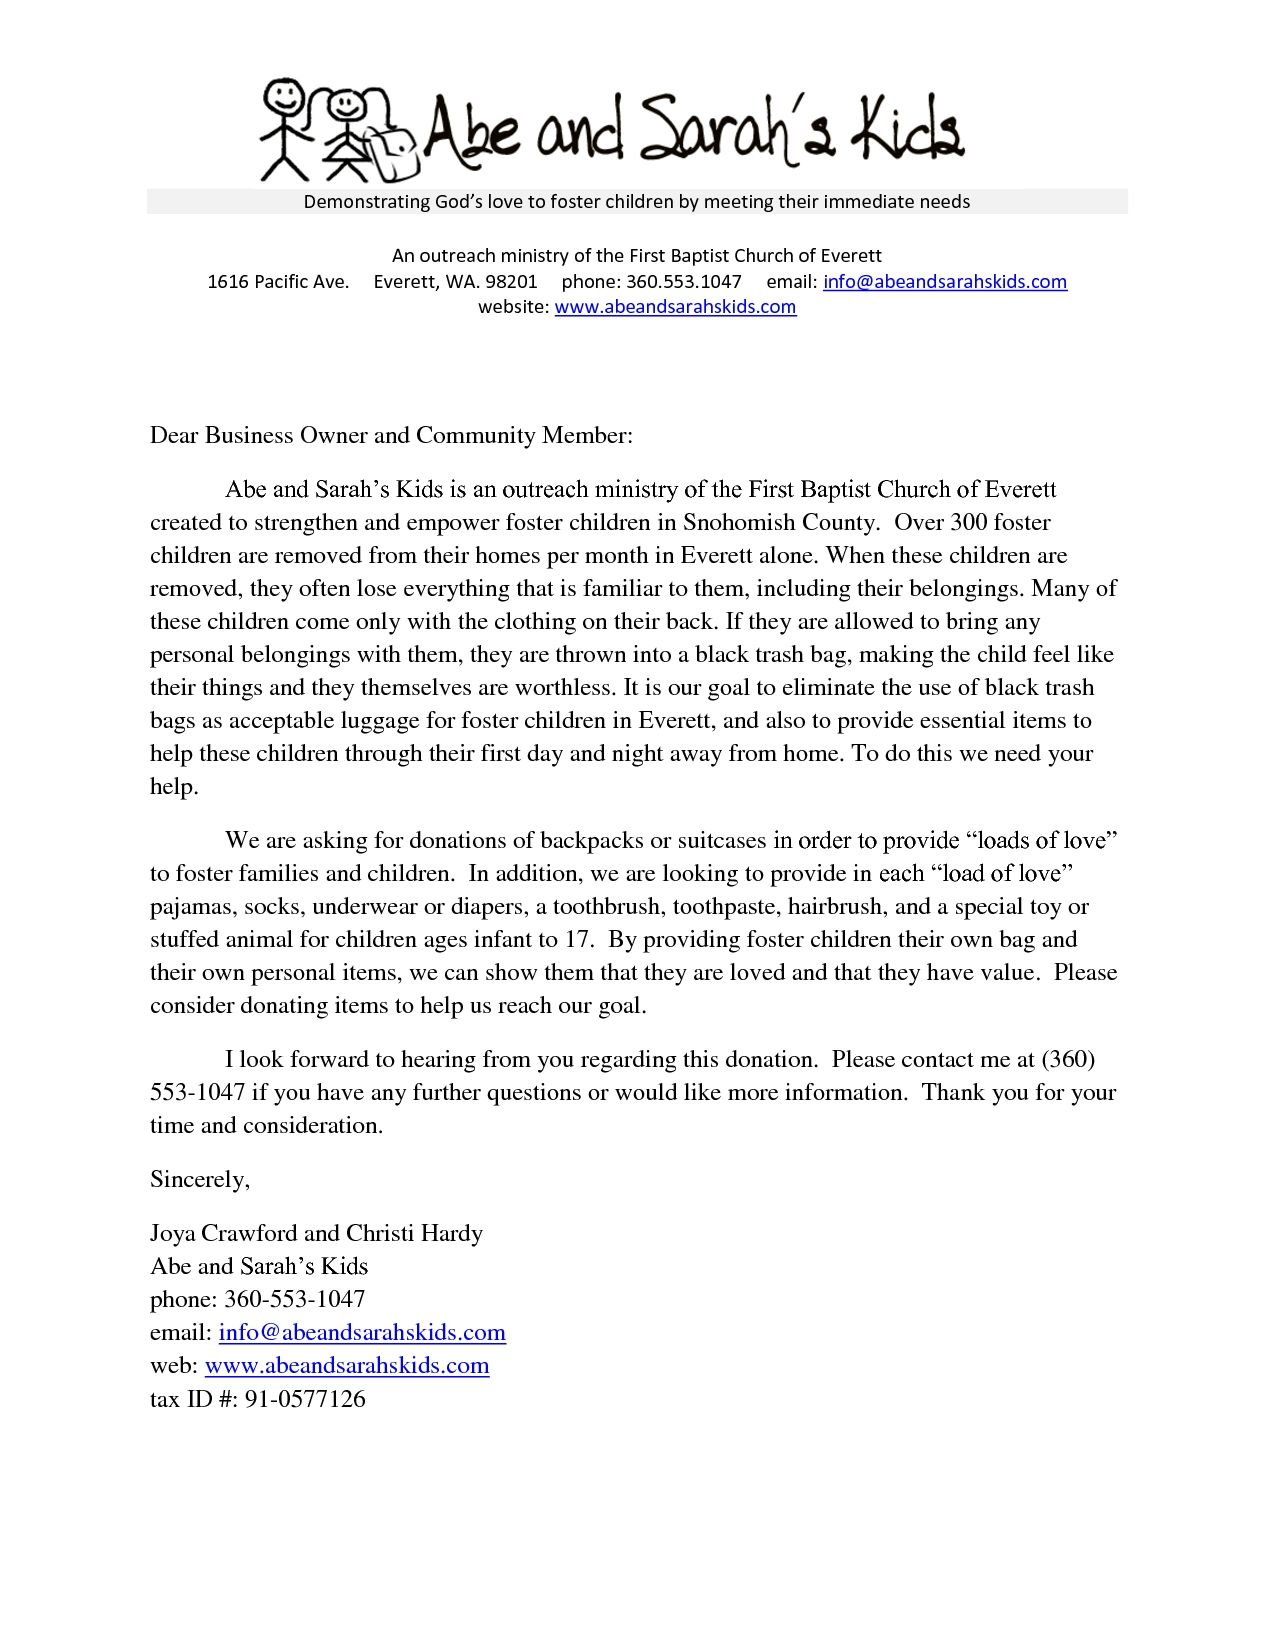 Sample Donation Request Letter For Church Building